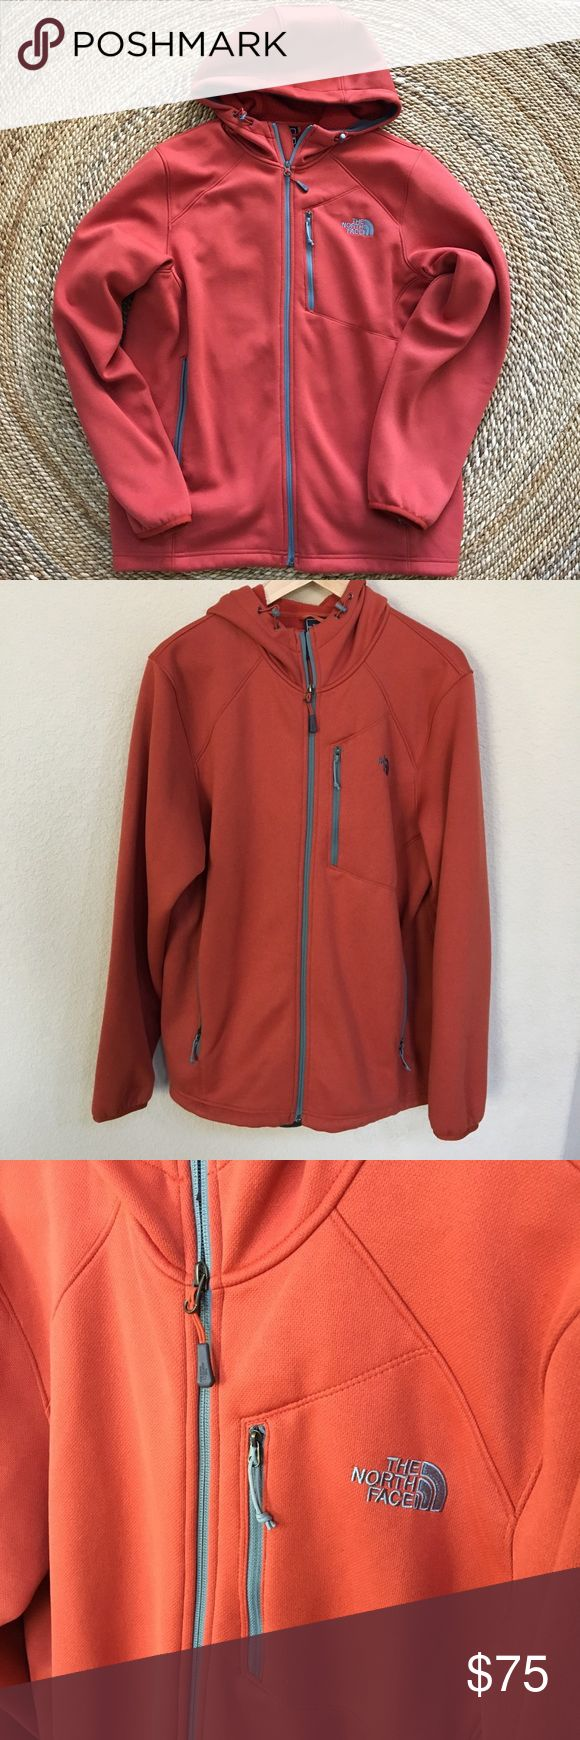 North Face Men's Jacket Great used condition Men's Large North Face Jacket.  Worn maybe once.  This jacket is a rust tone. Jacket has many pockets and hood. North Face Jackets & Coats